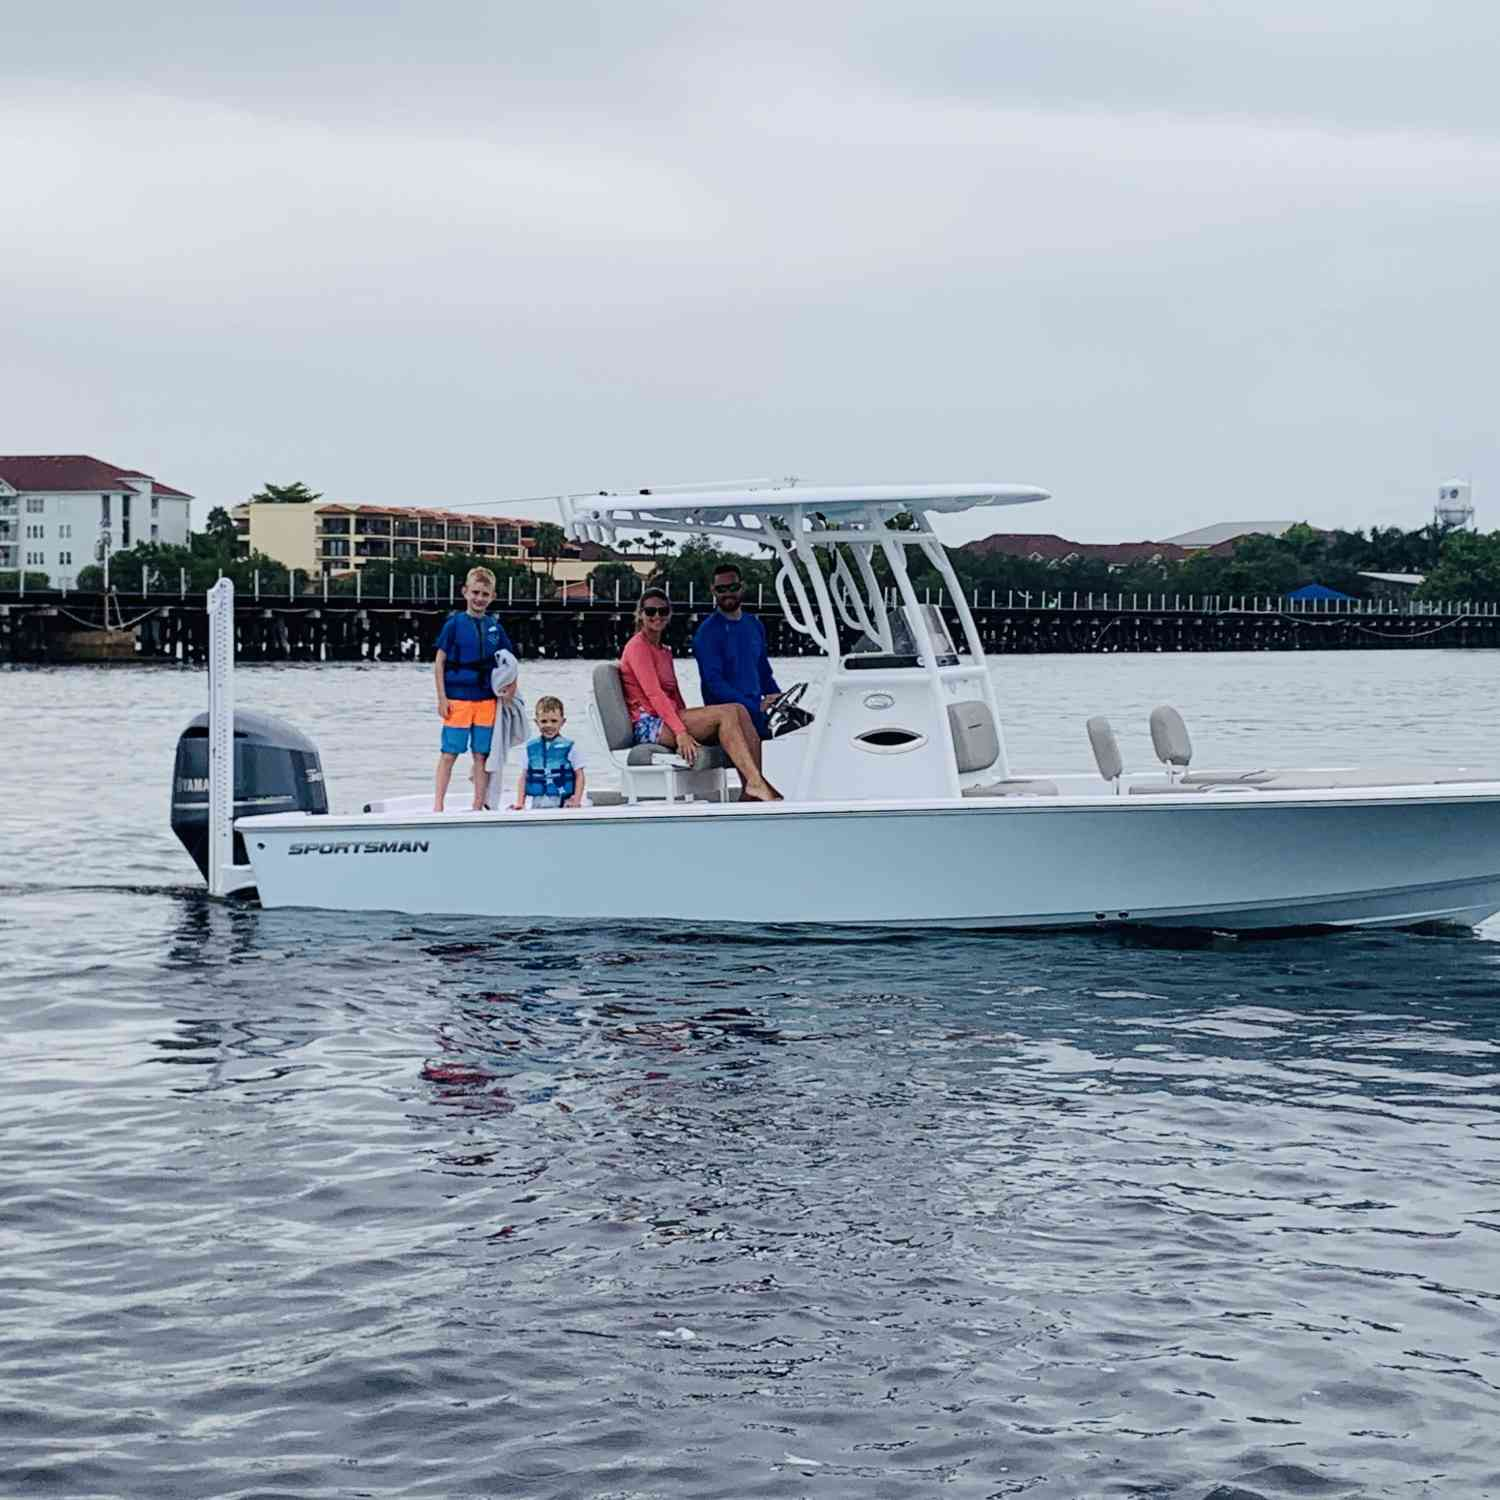 Title: New 2021 Sportman - On board their Sportsman Masters 247 Bay Boat - Location: Bradenton, Fl. Participating in the Photo Contest #SportsmanSeptember2020